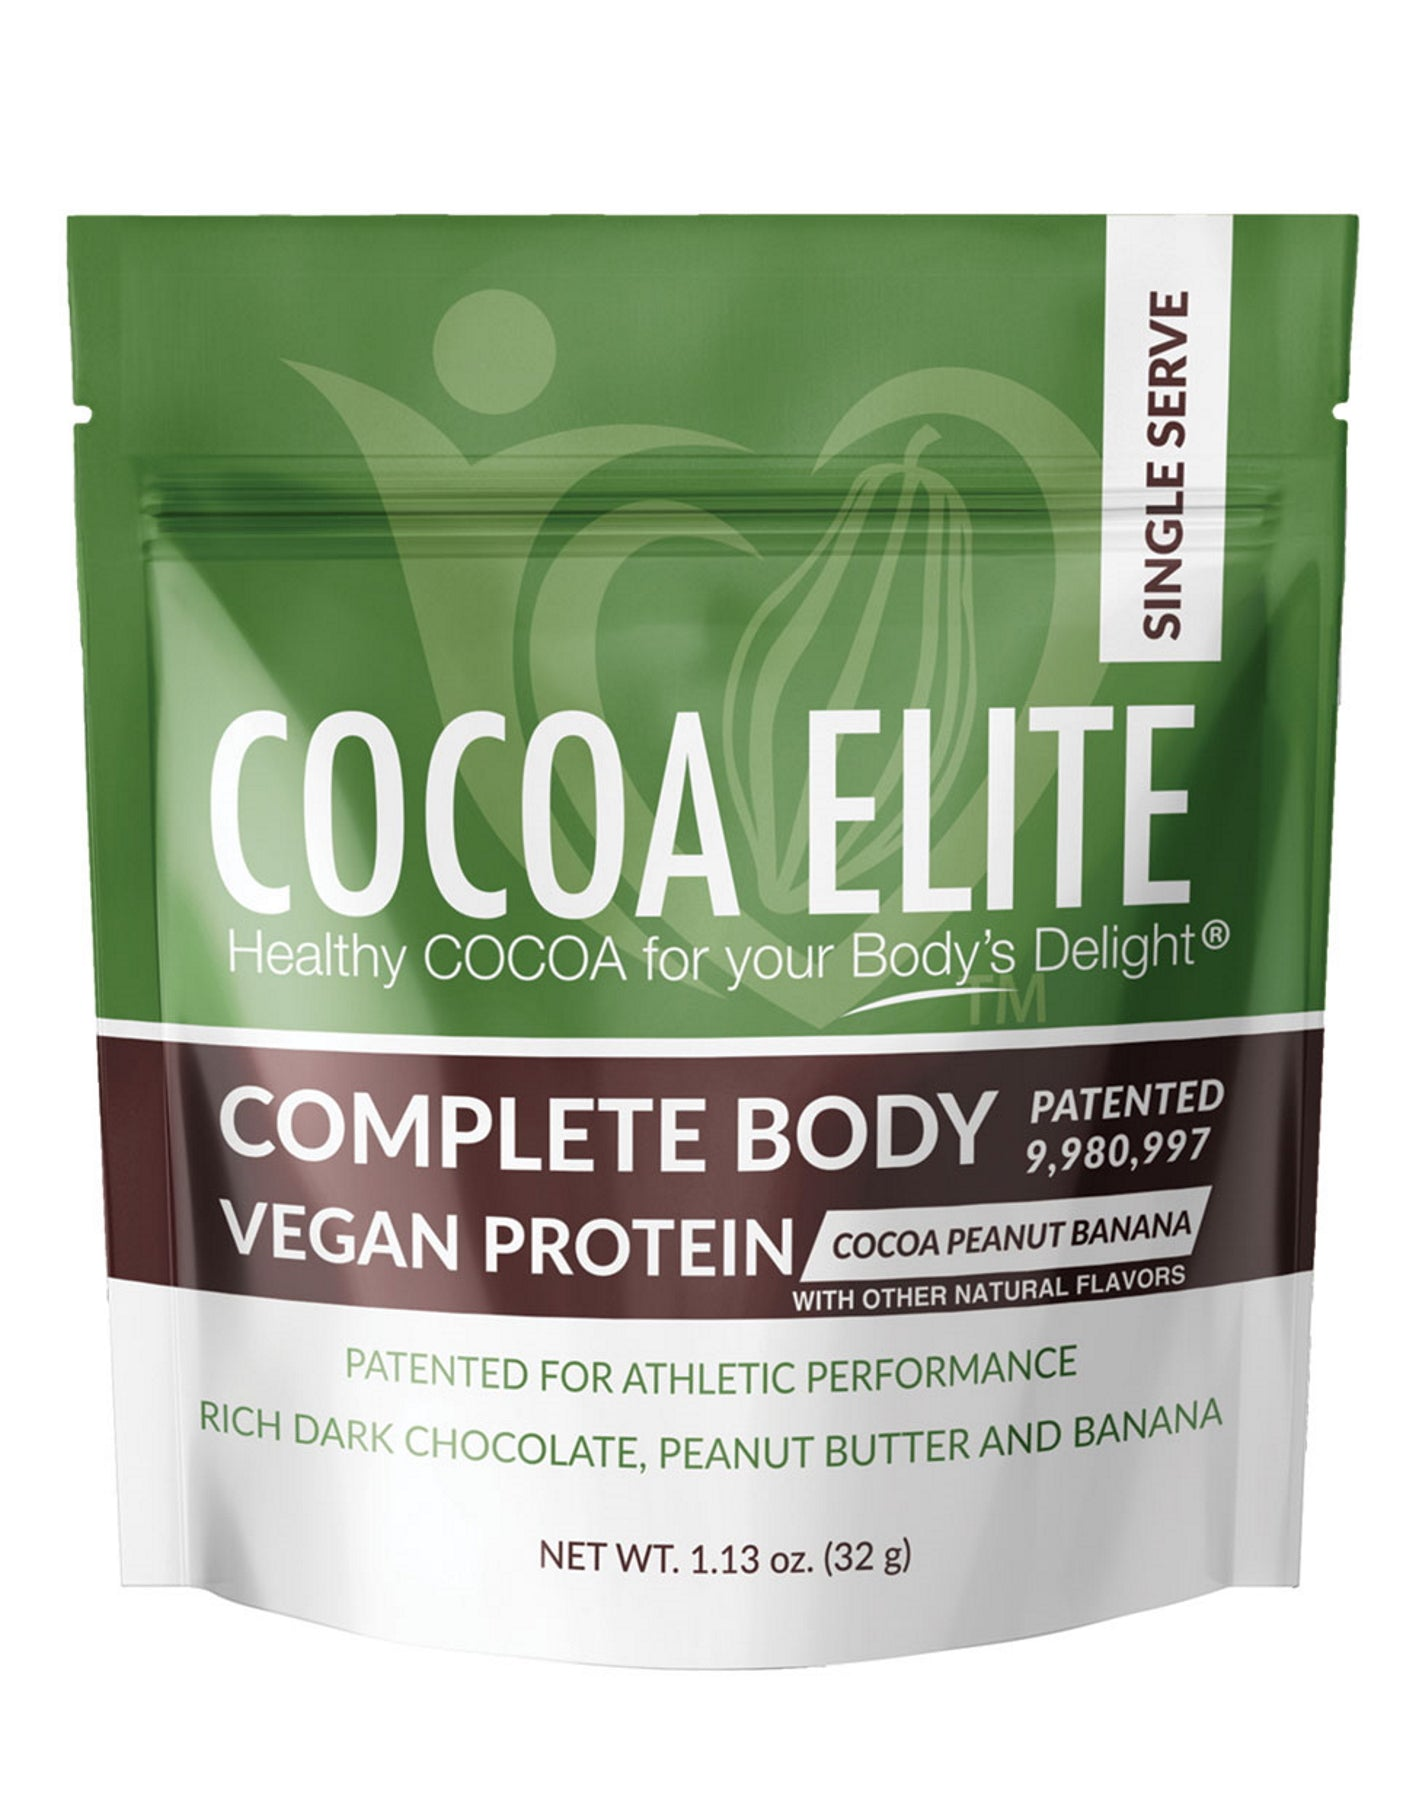 Vegan Protein Cocoa Peanut Banana  - Single Serve